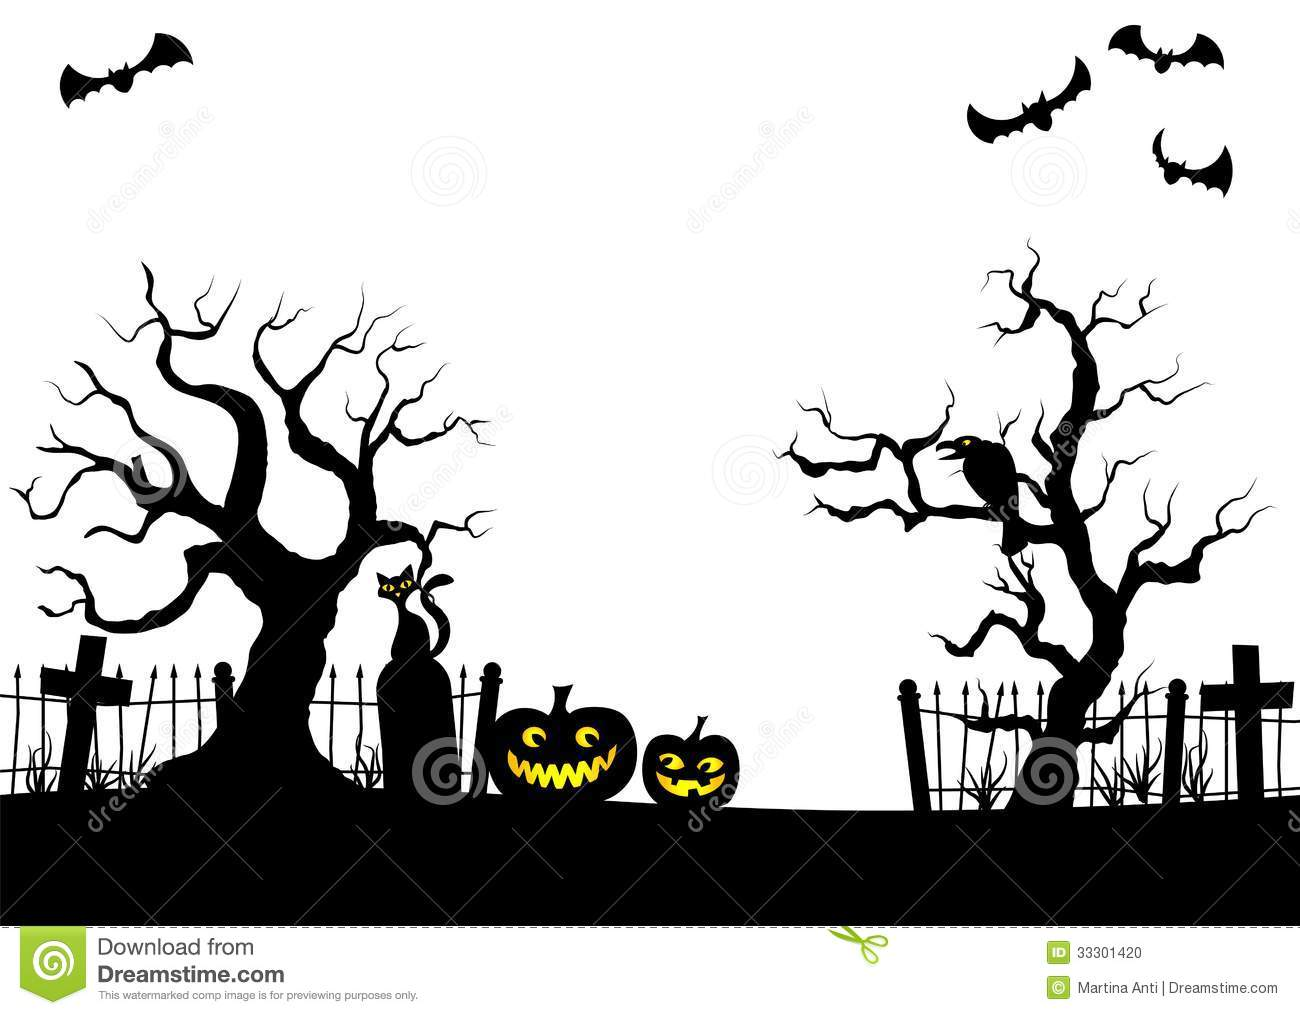 Cemetery clipart - Clipground - 99.4KB